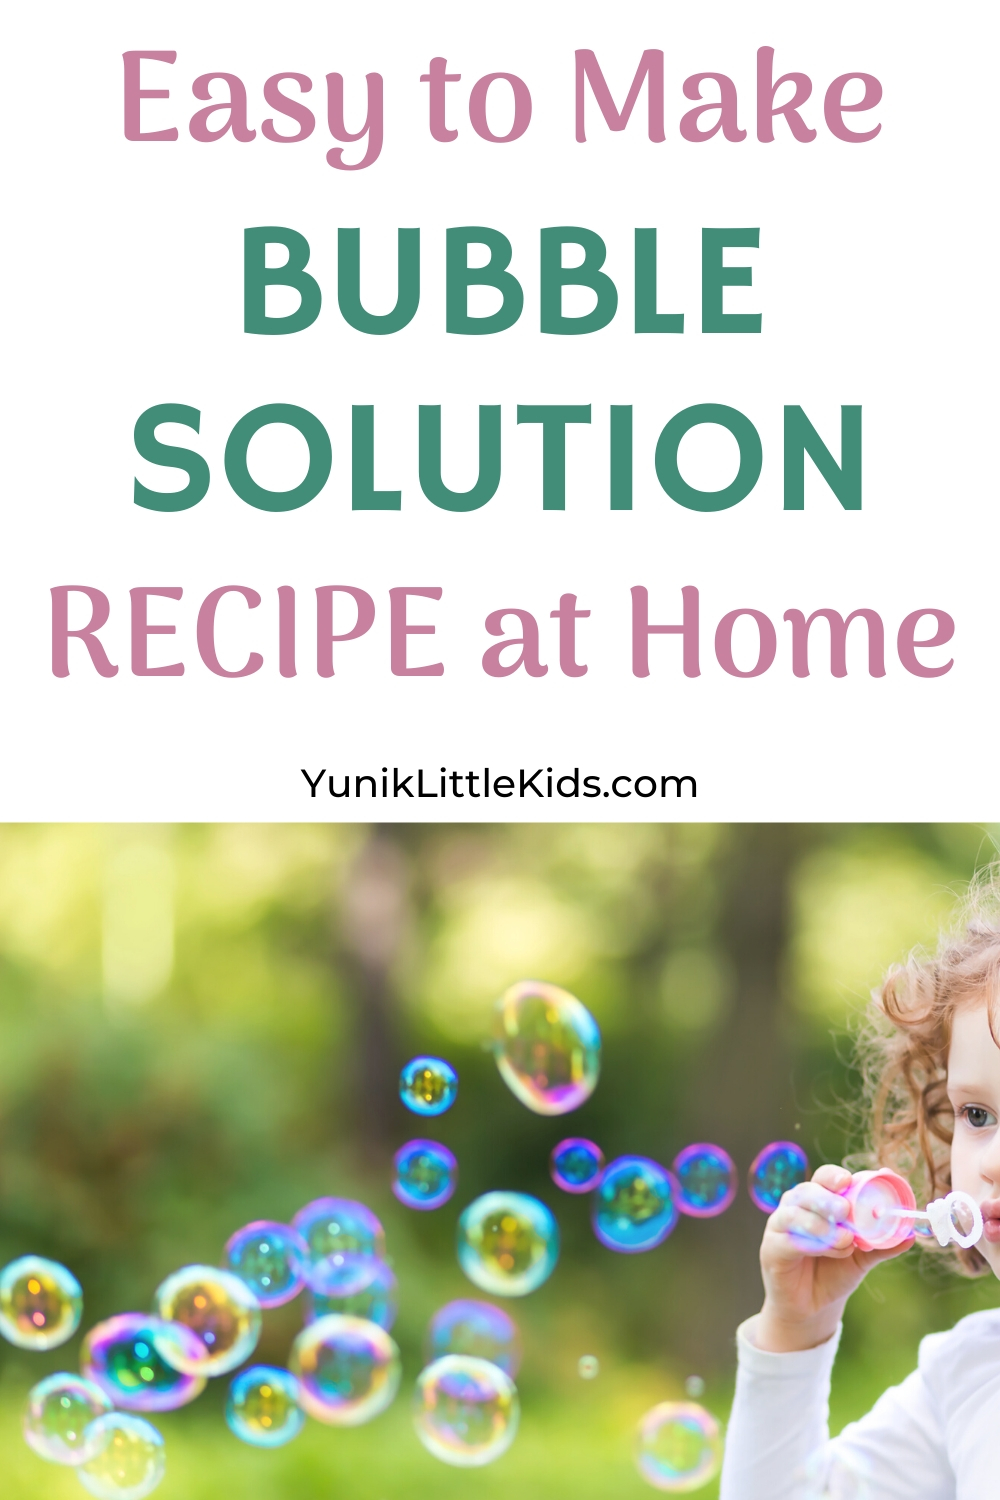 A kid blowing bubbles with homemade bubble solution